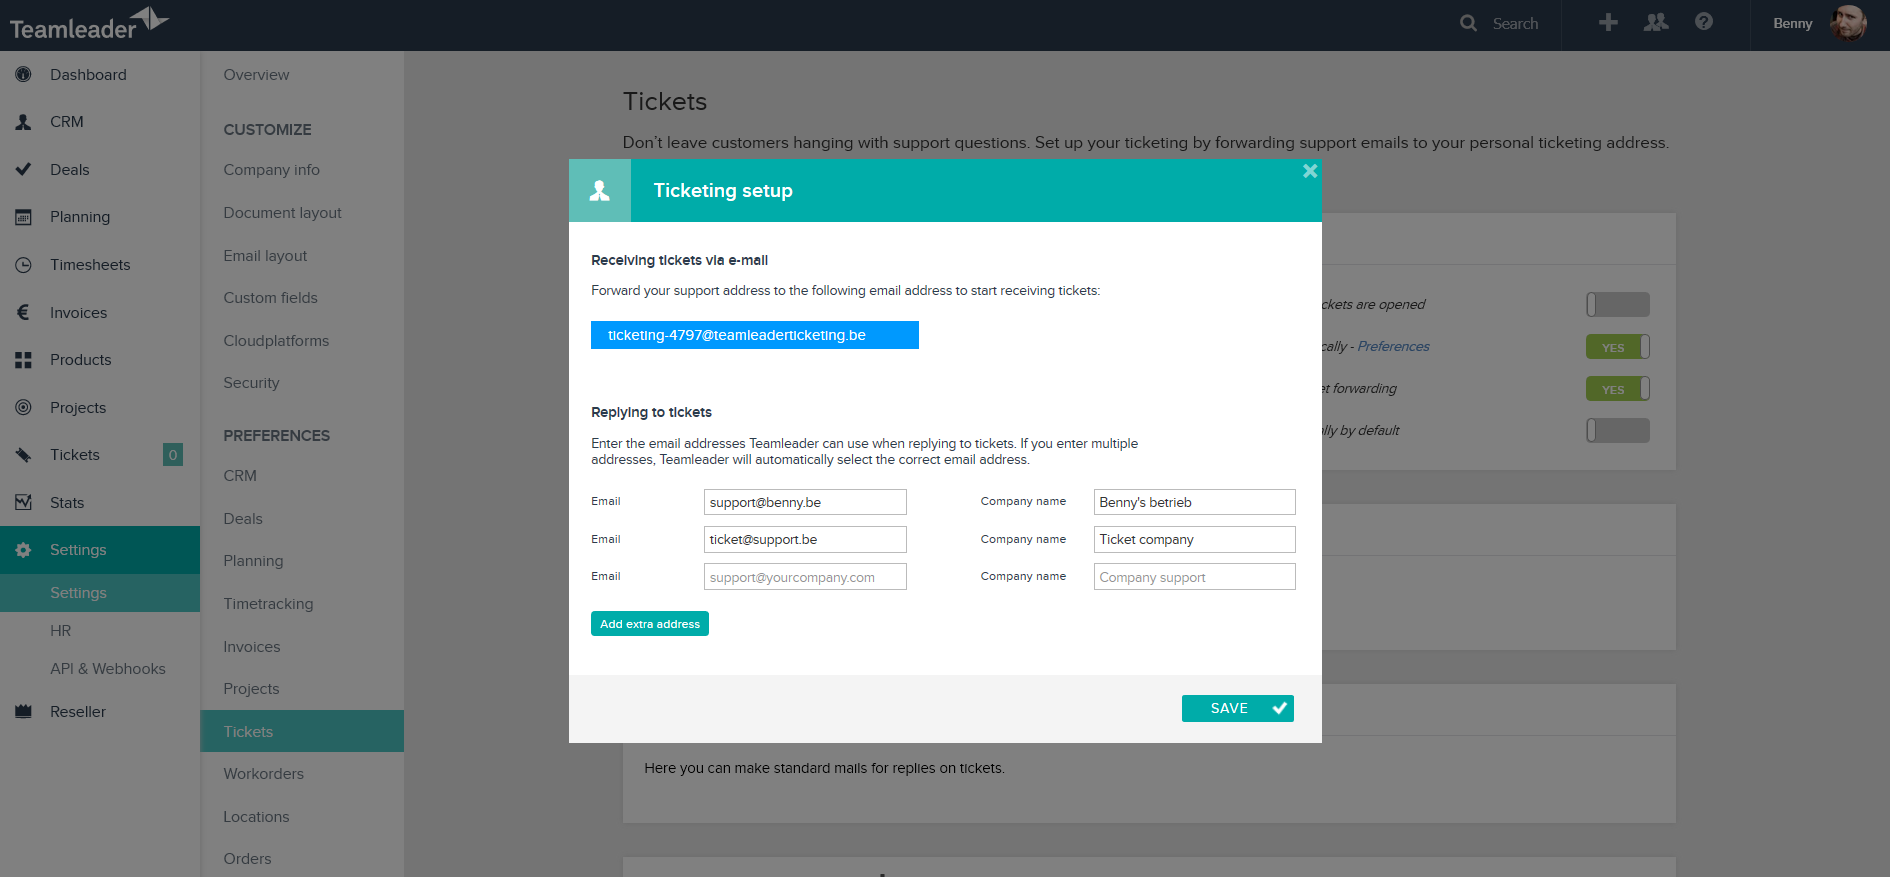 Teamleader's tickets module sends all customer queries and support requests to a single, unified email inbox